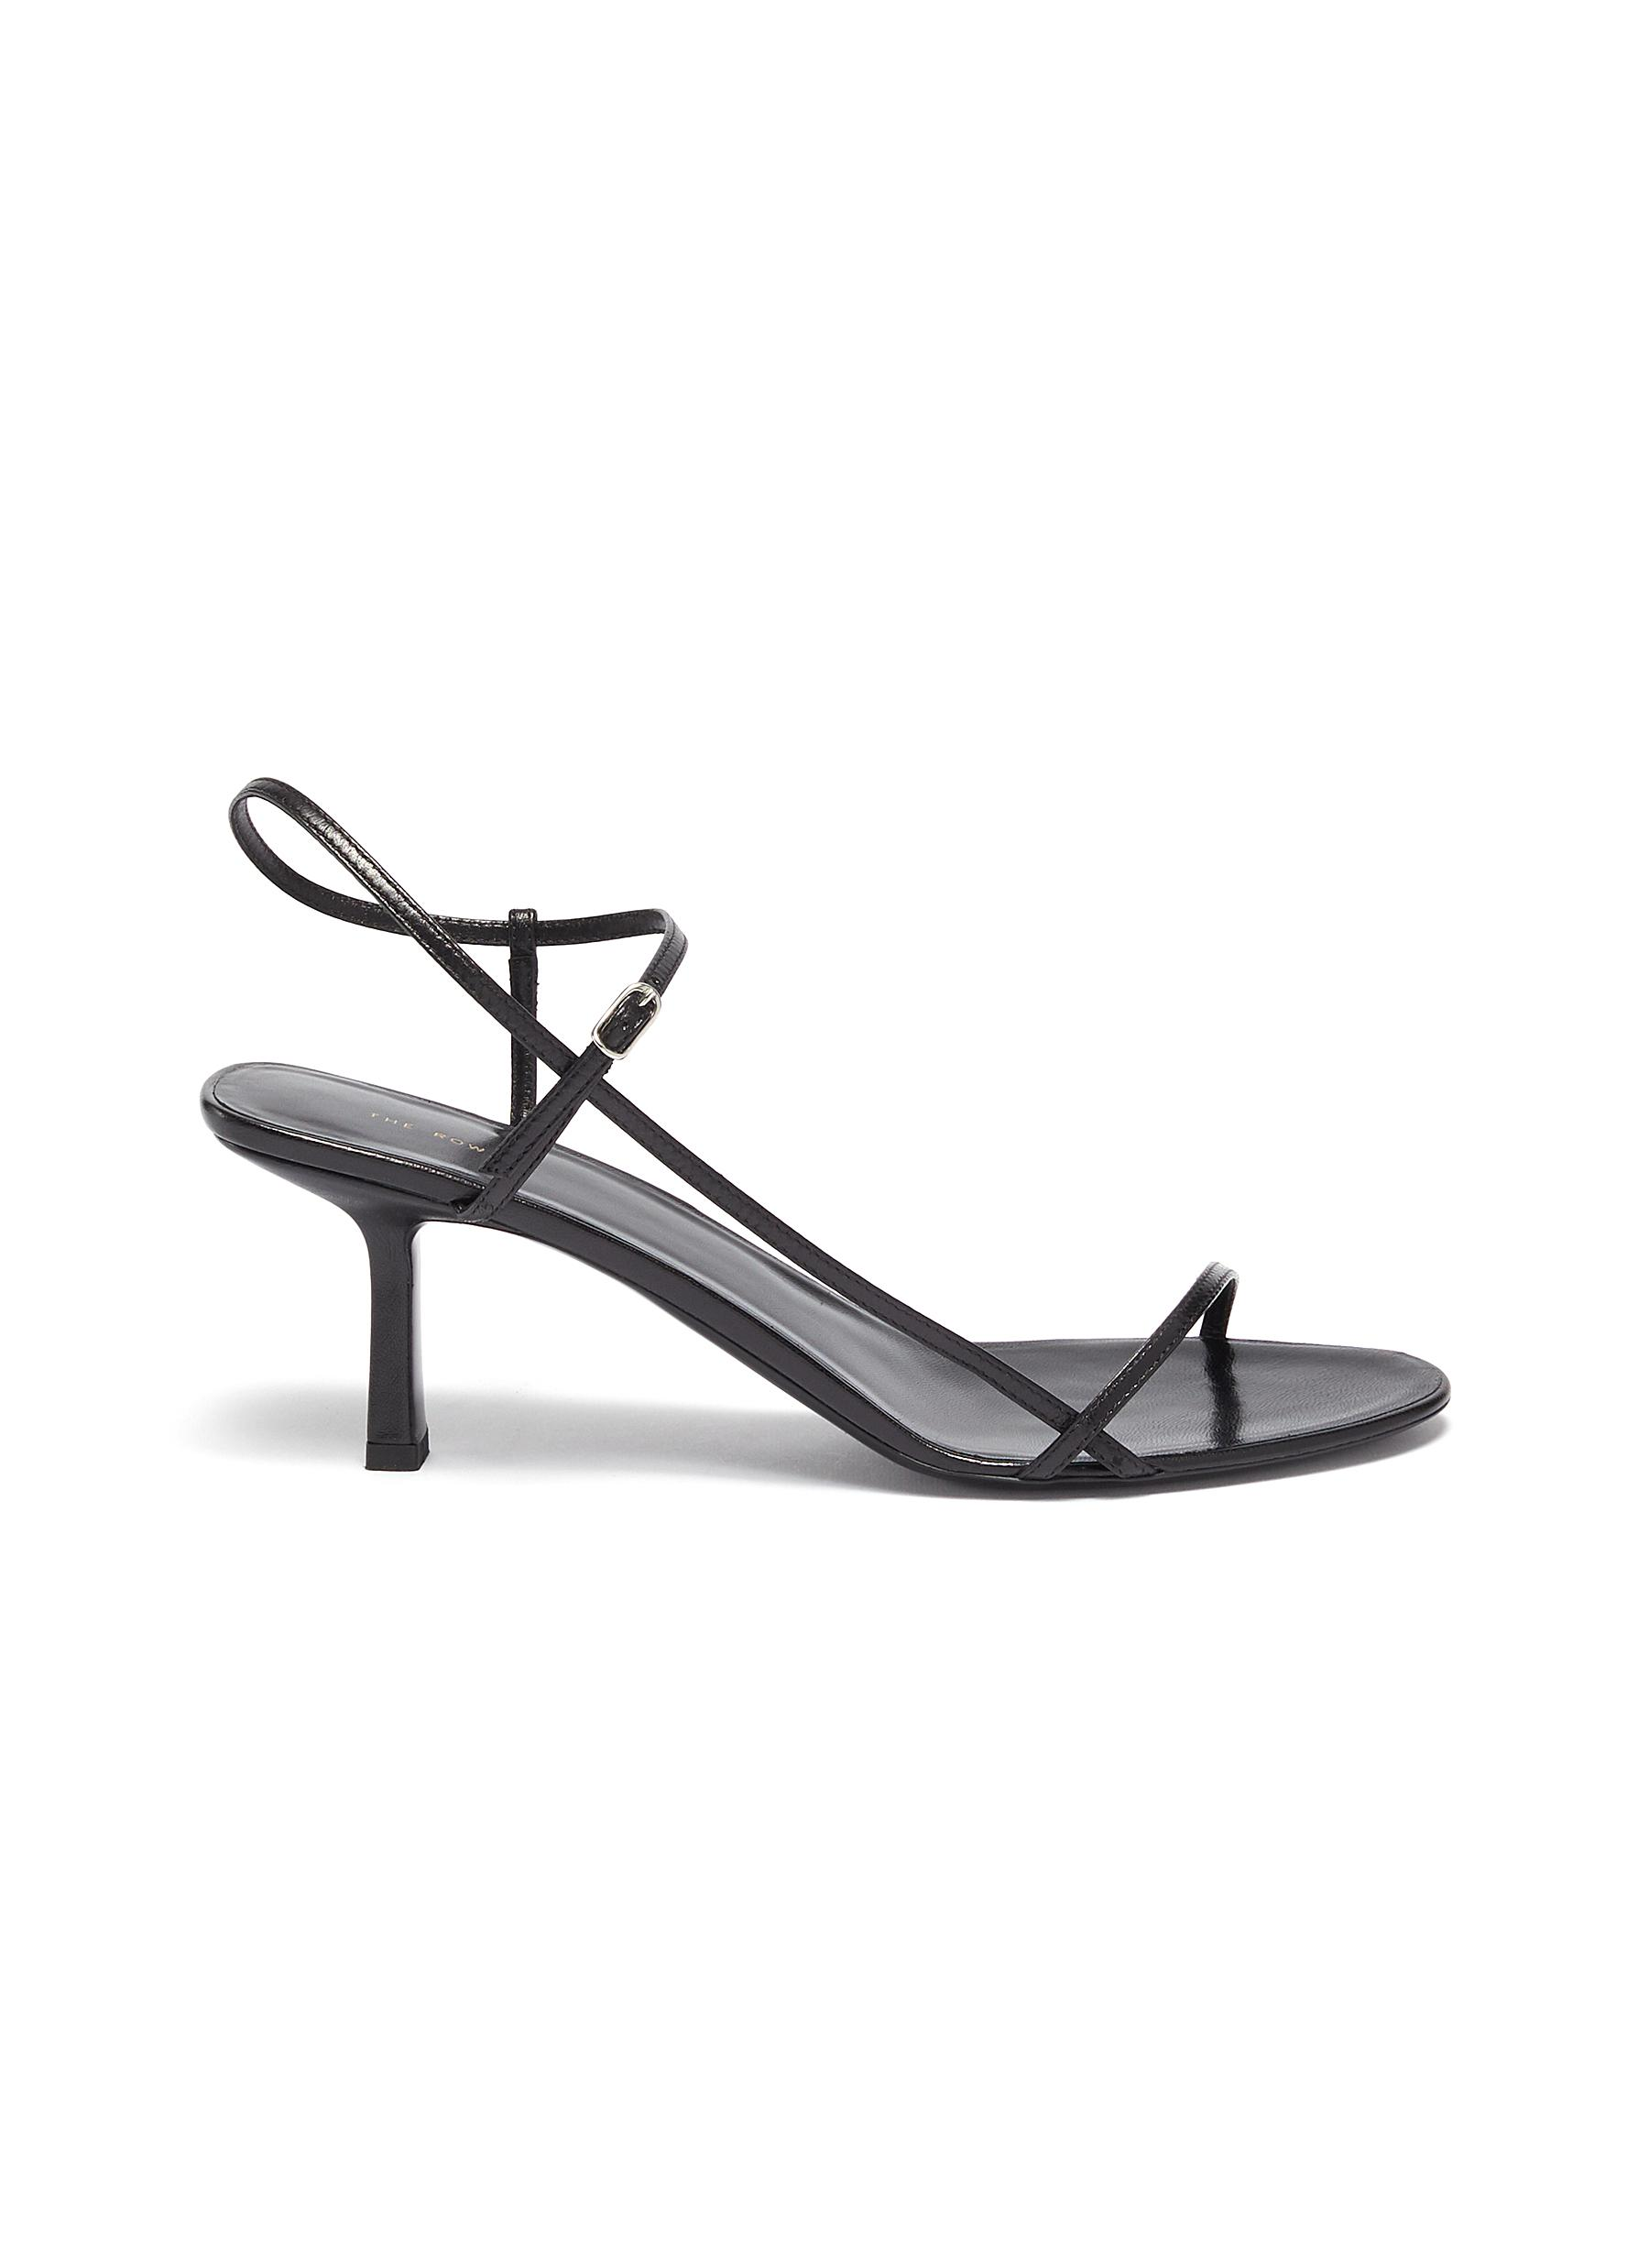 The Row Mid Heels Bare 65 strappy leather sandals